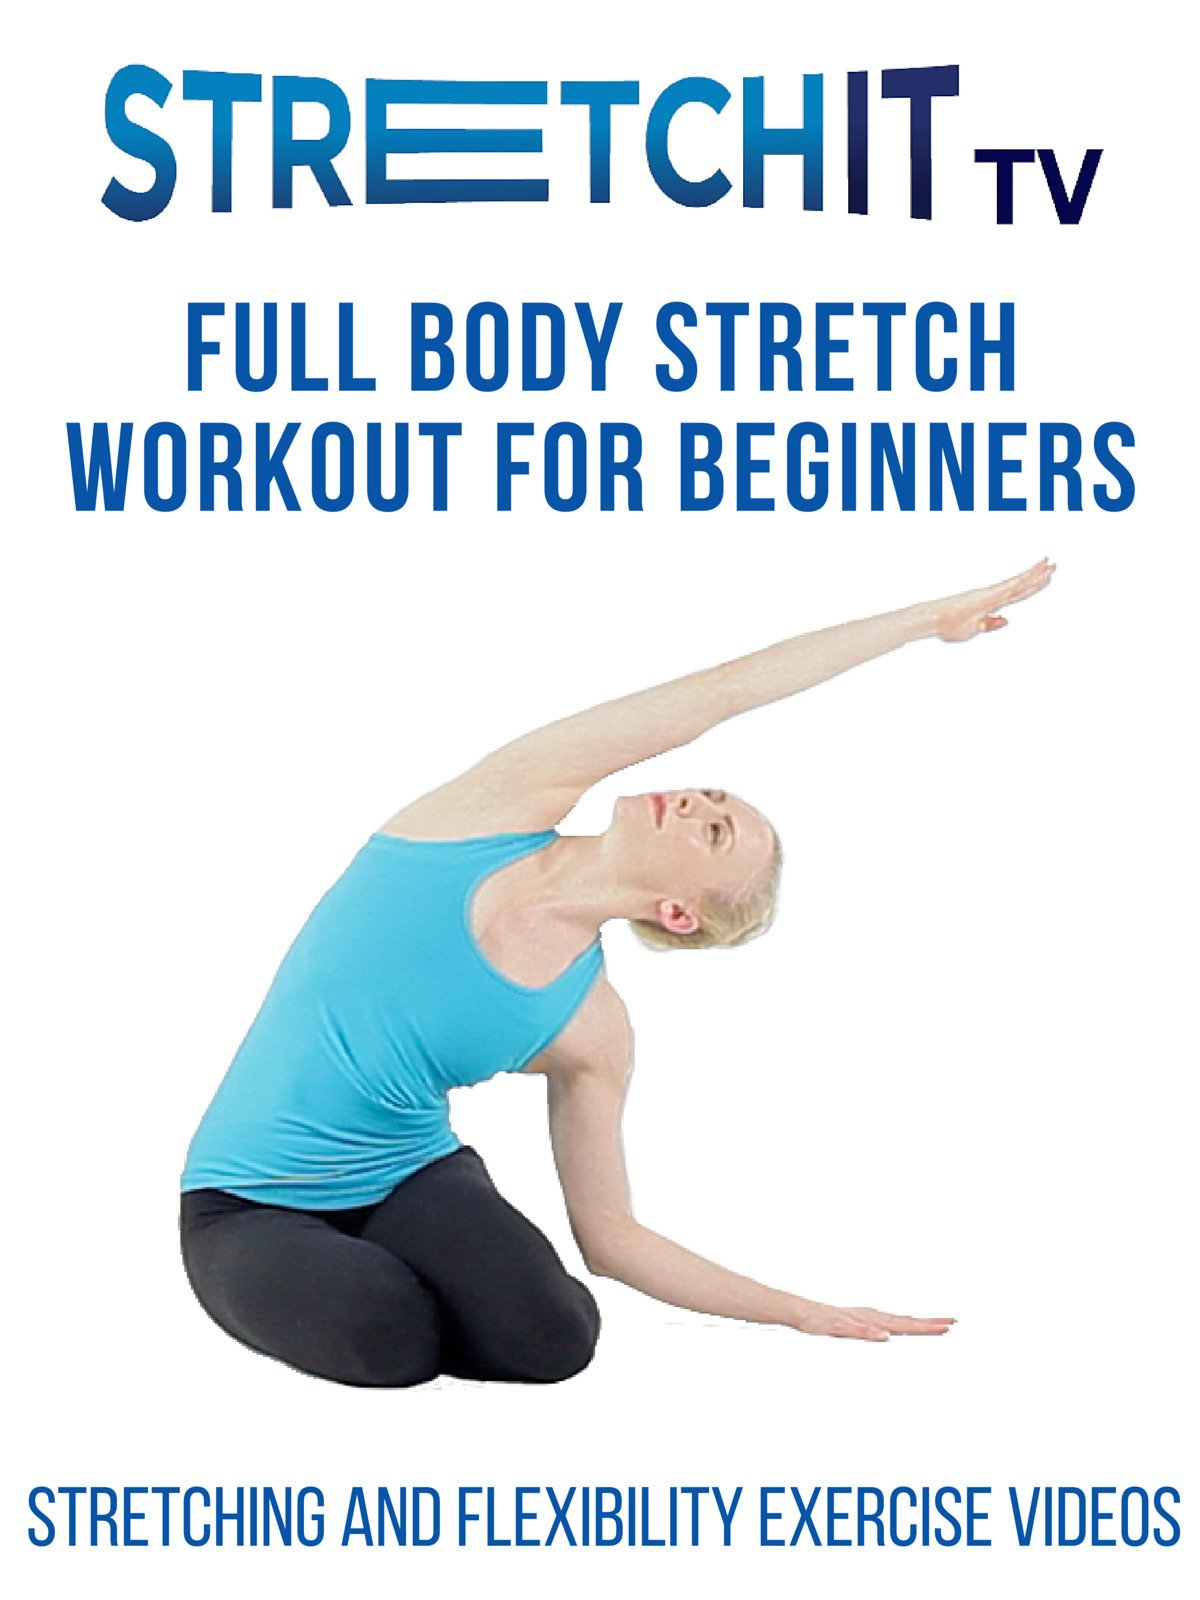 Amazon Com Stretching And Flexibility Exercise Videos Full Body Stretch Workout For Beginners Allison Wardwell Stretchit